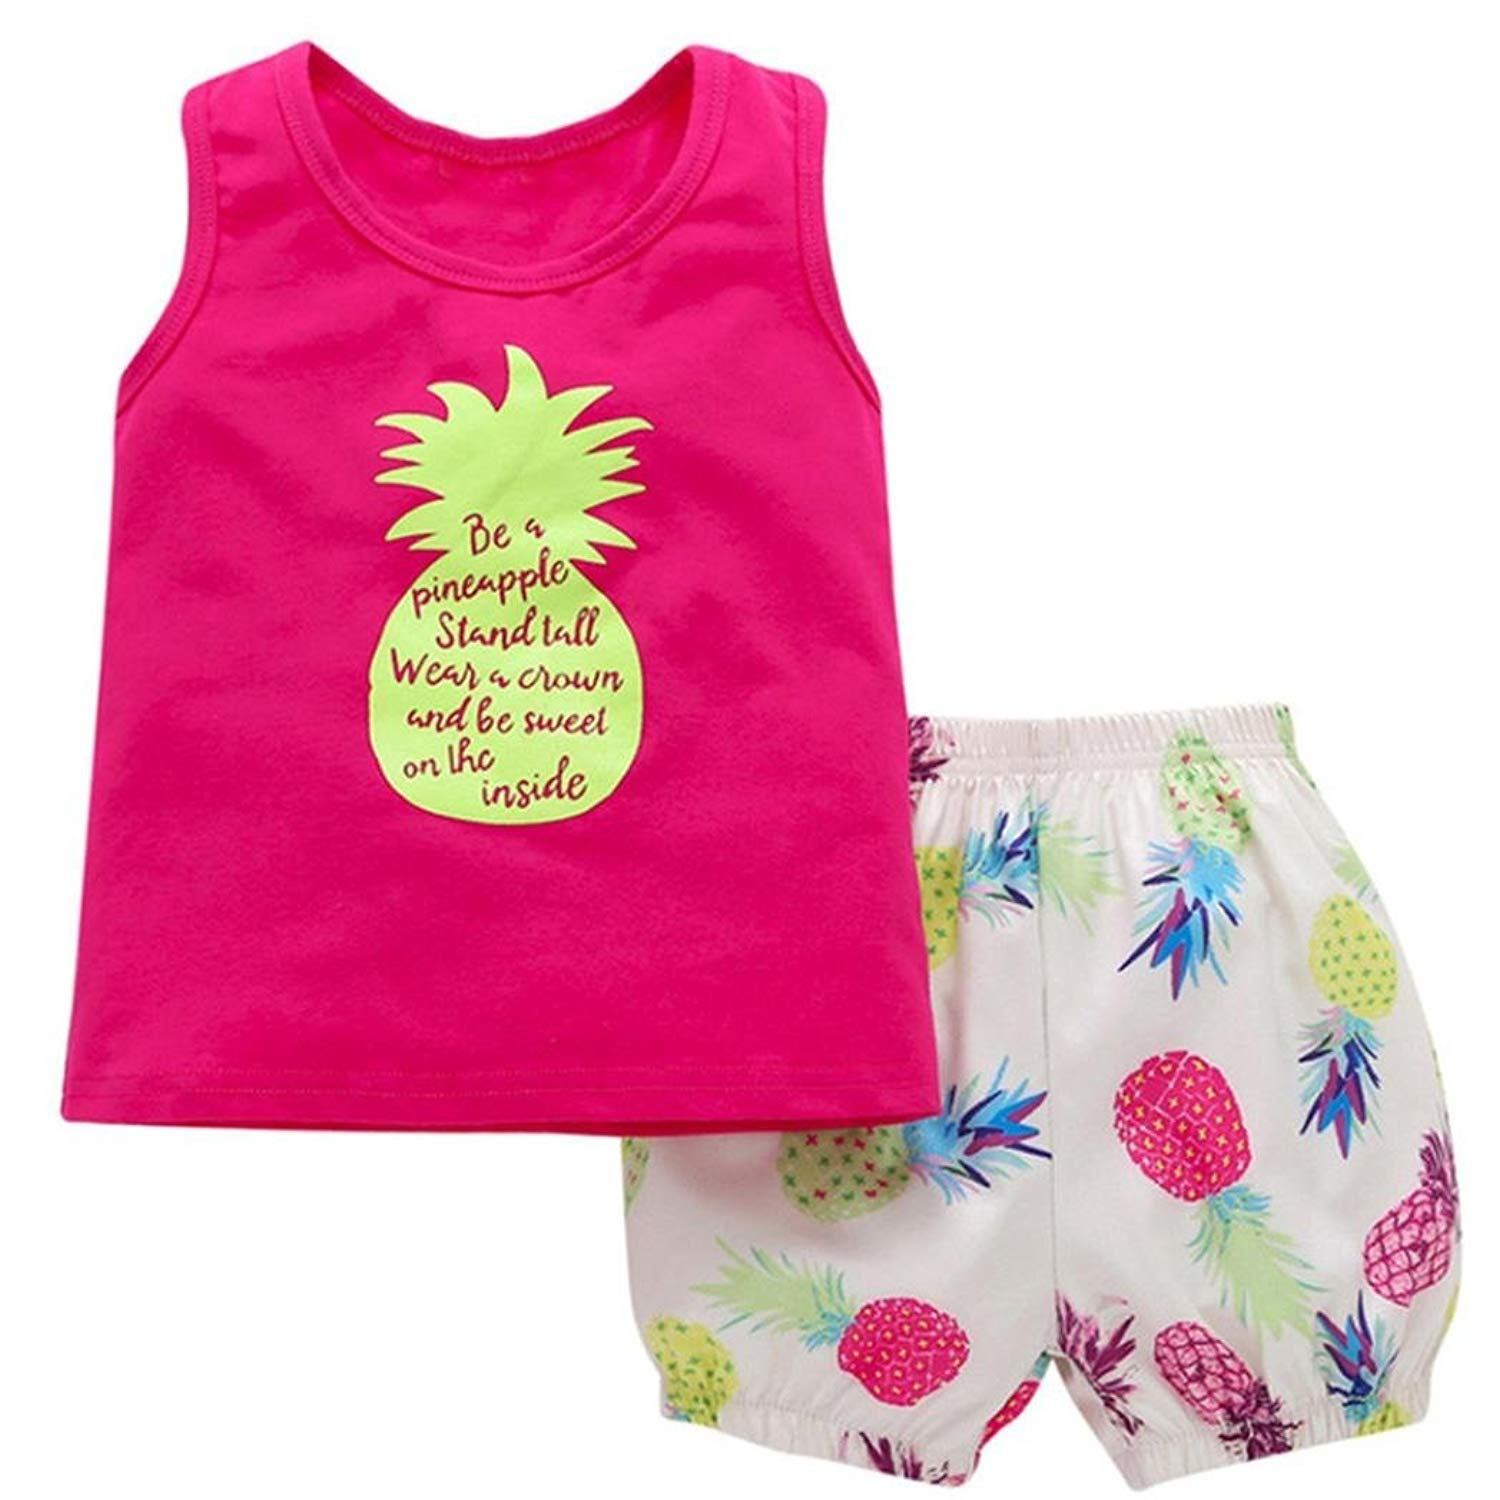 Oklady Toddler Baby Girls Clothes Summer Pineapple Sleeveless Vest Tops + Pants Outfit 2pcs Set